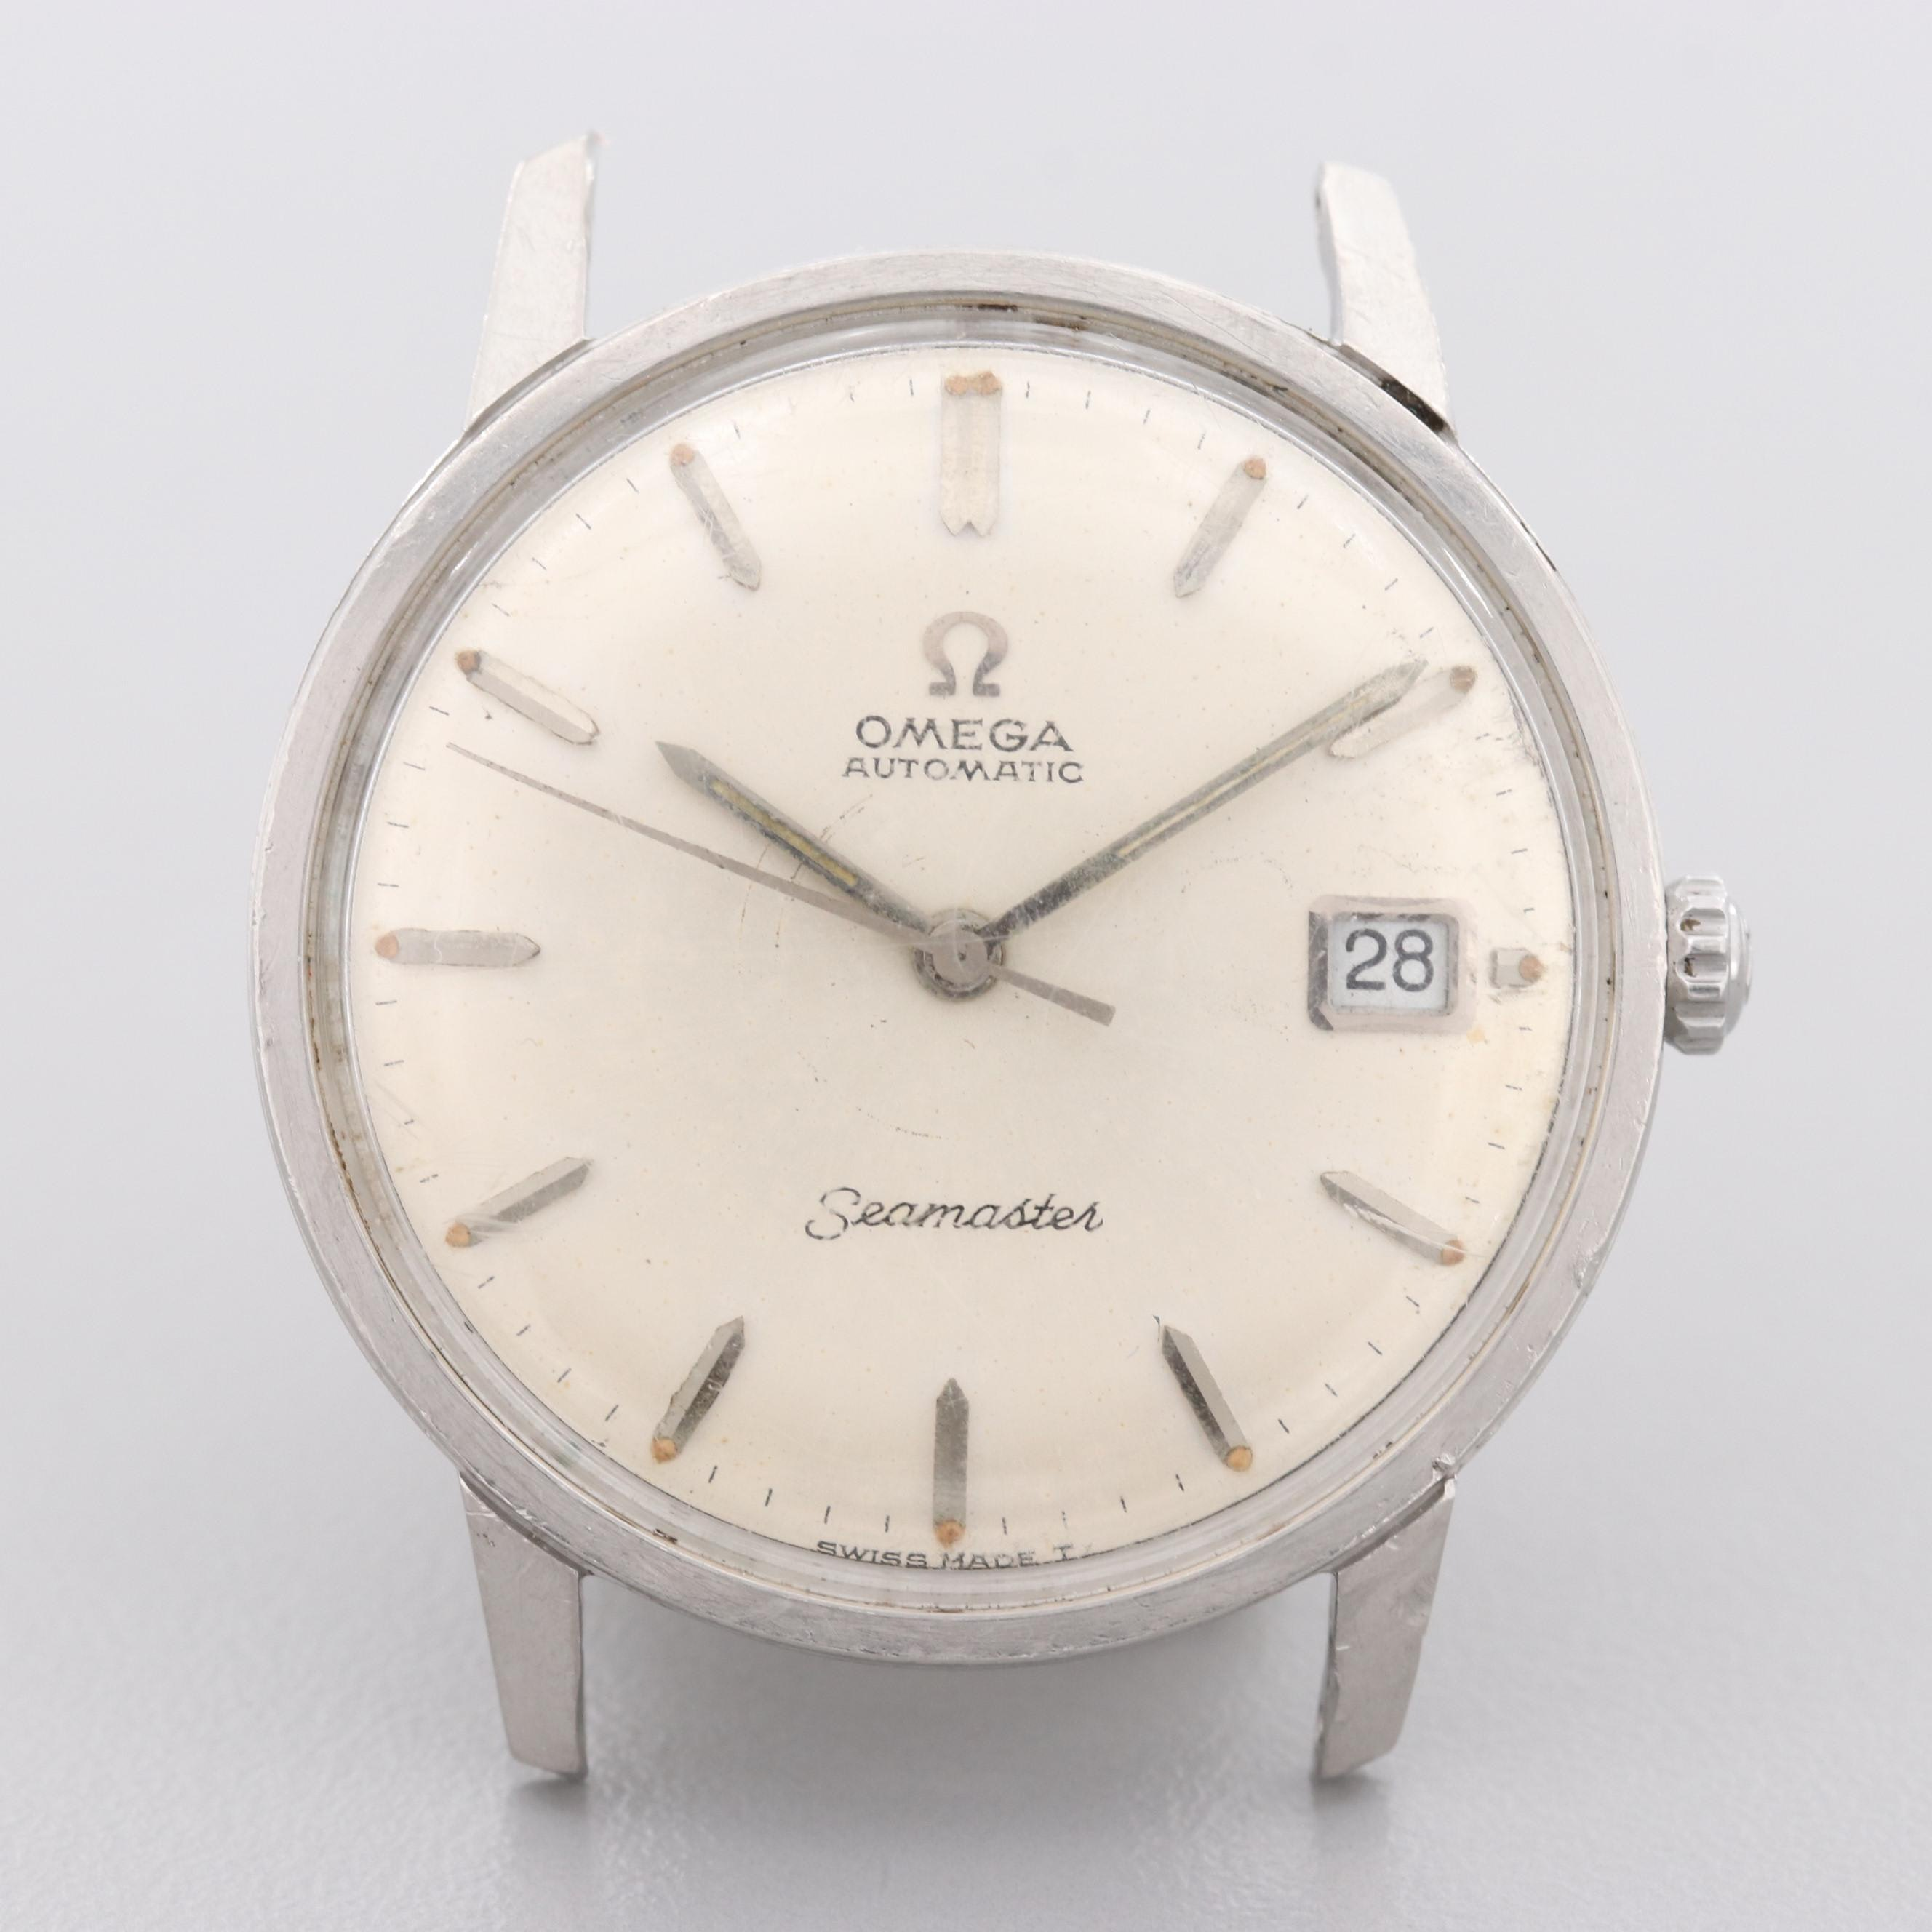 Vintage Omega Seamaster Calendar Stainless Steel Automatic Wristwatch Timepiece